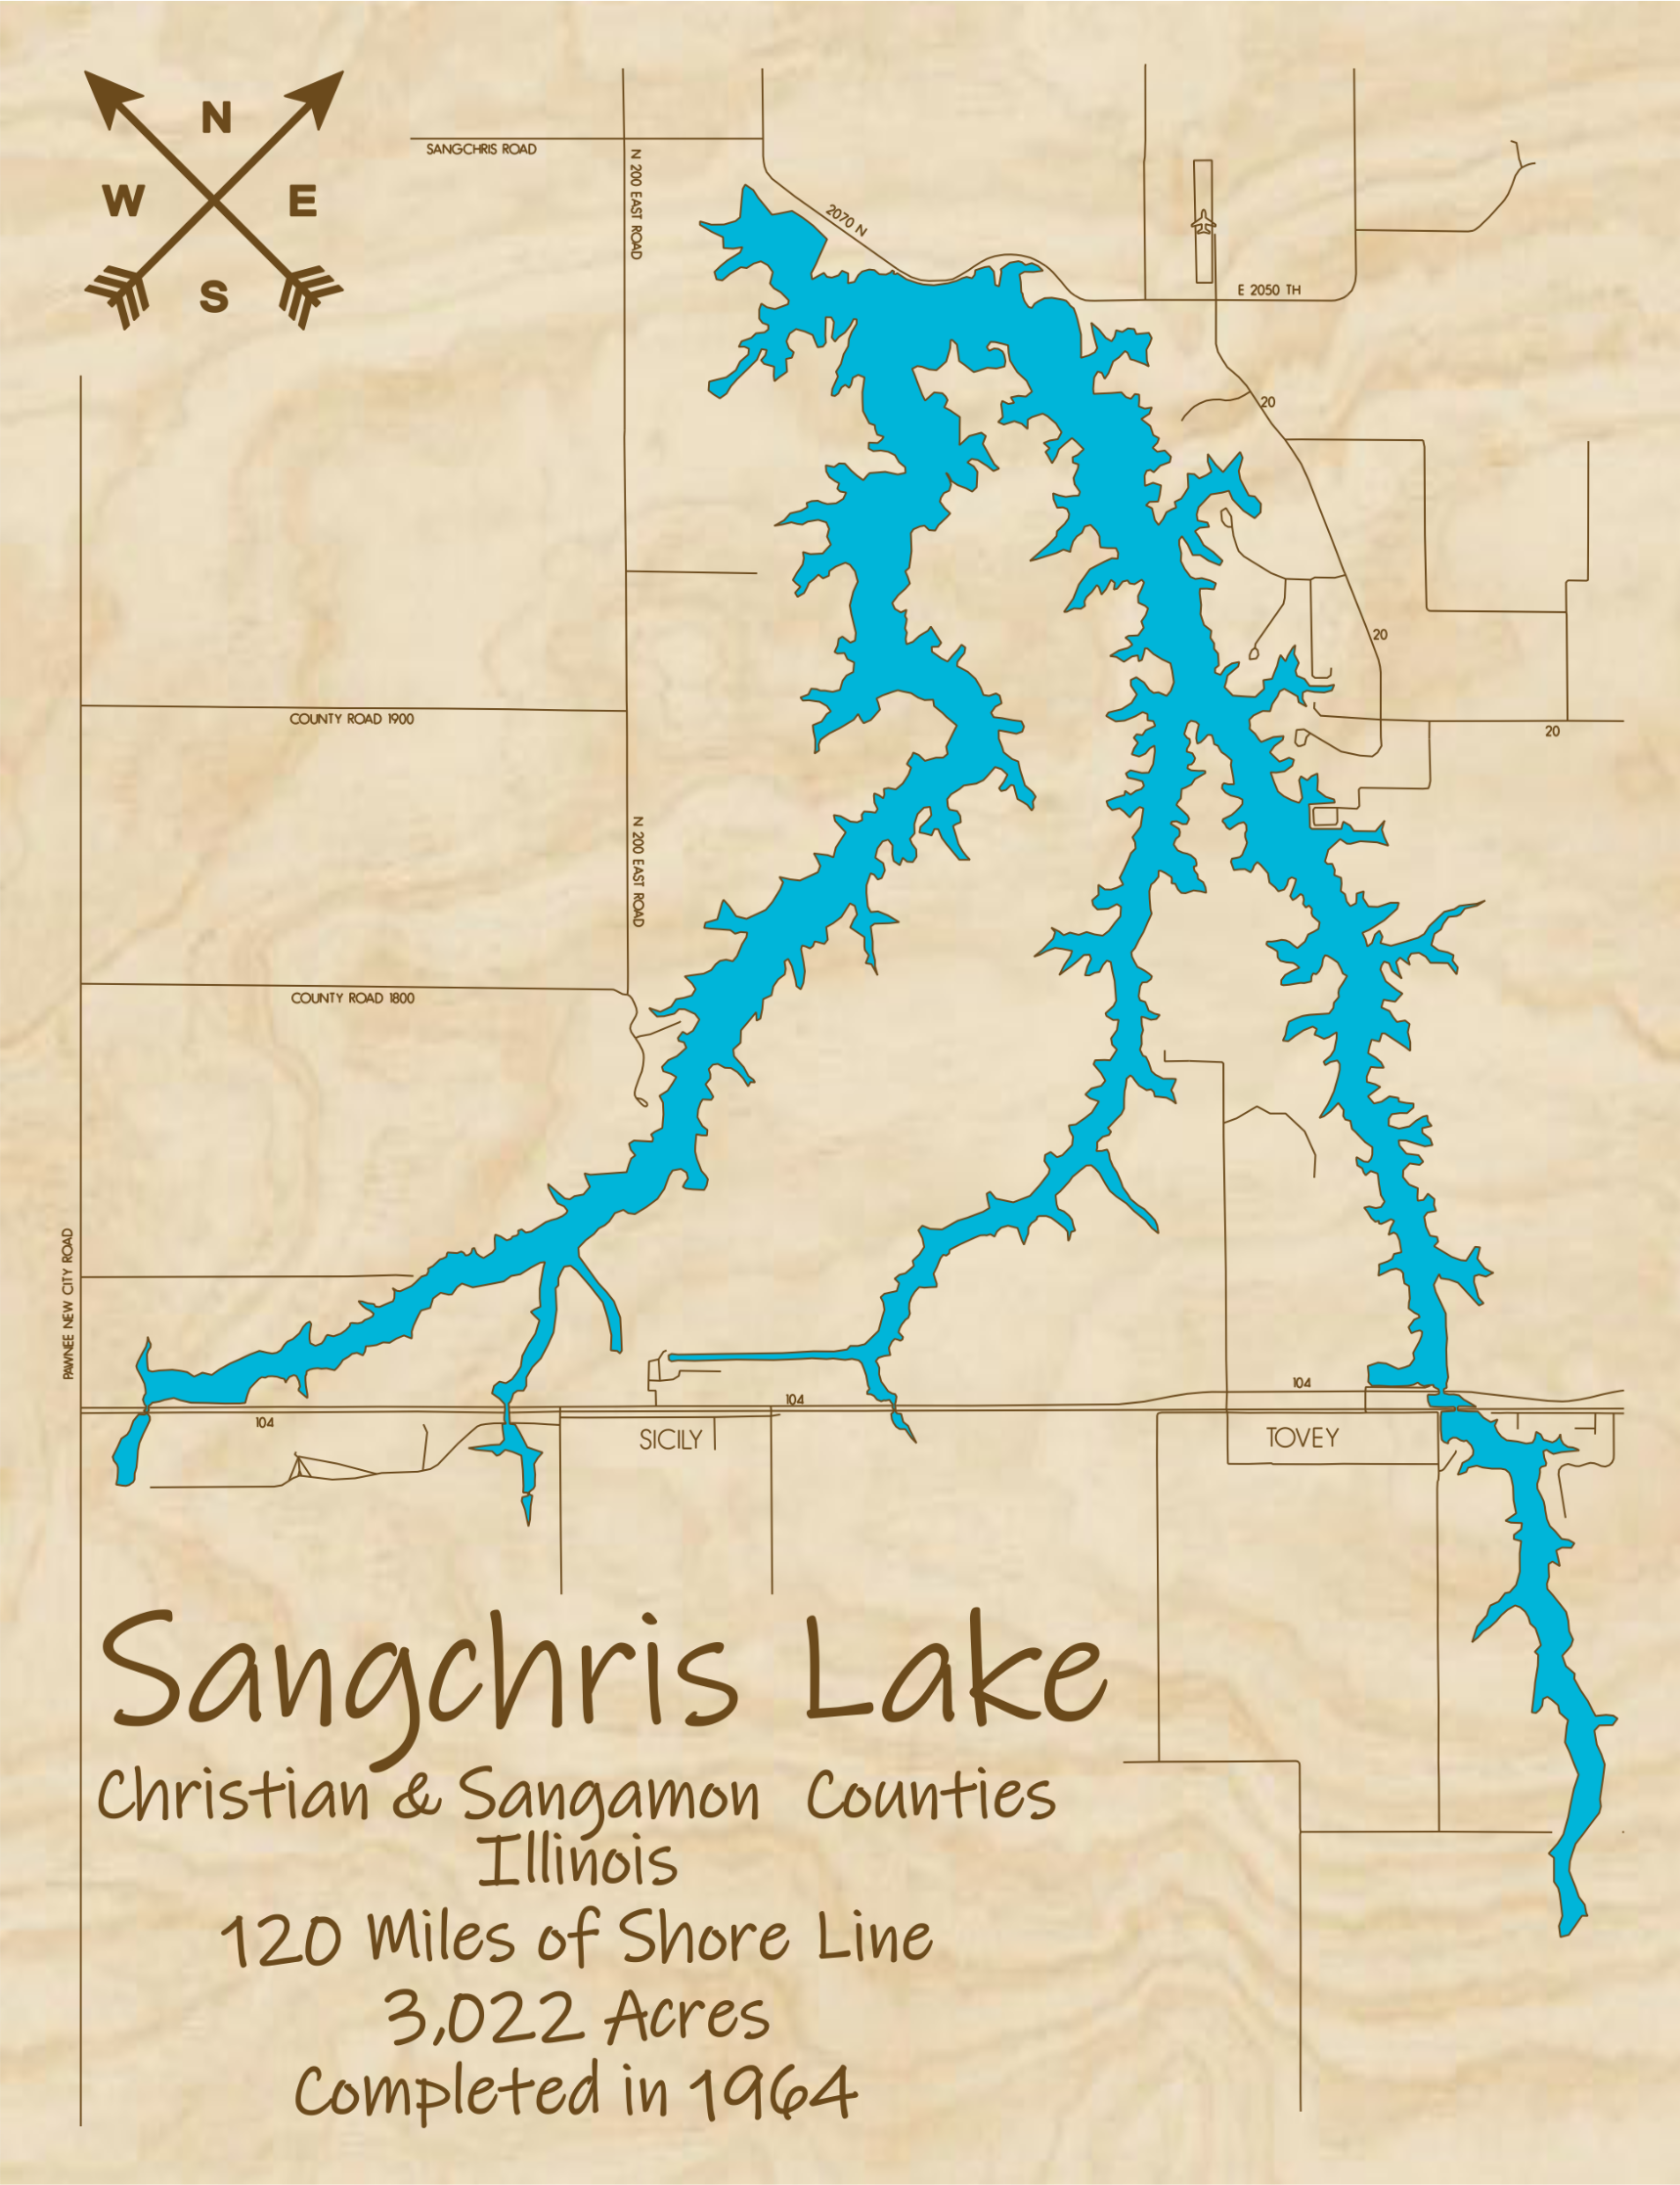 Lake Sangchris Multi-layered Wood Lake Map